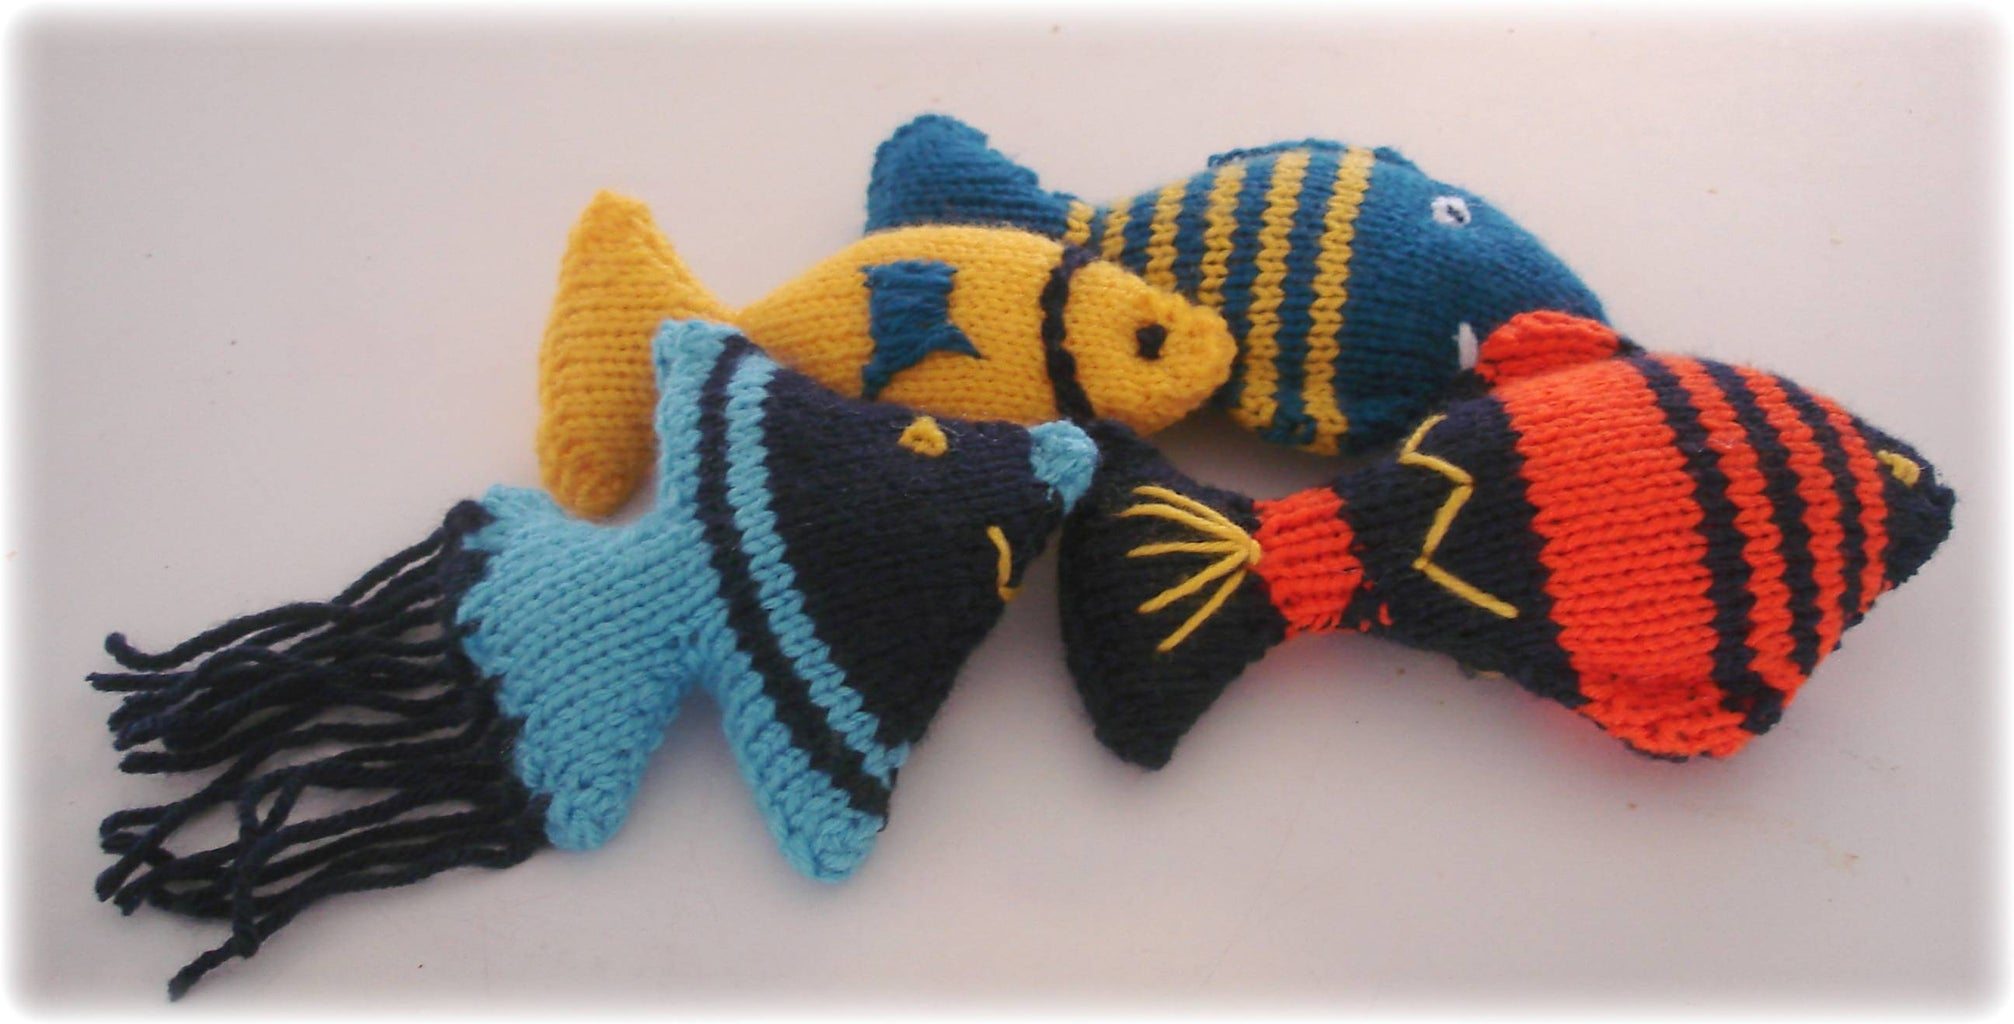 Variations on a Fishy Theme!